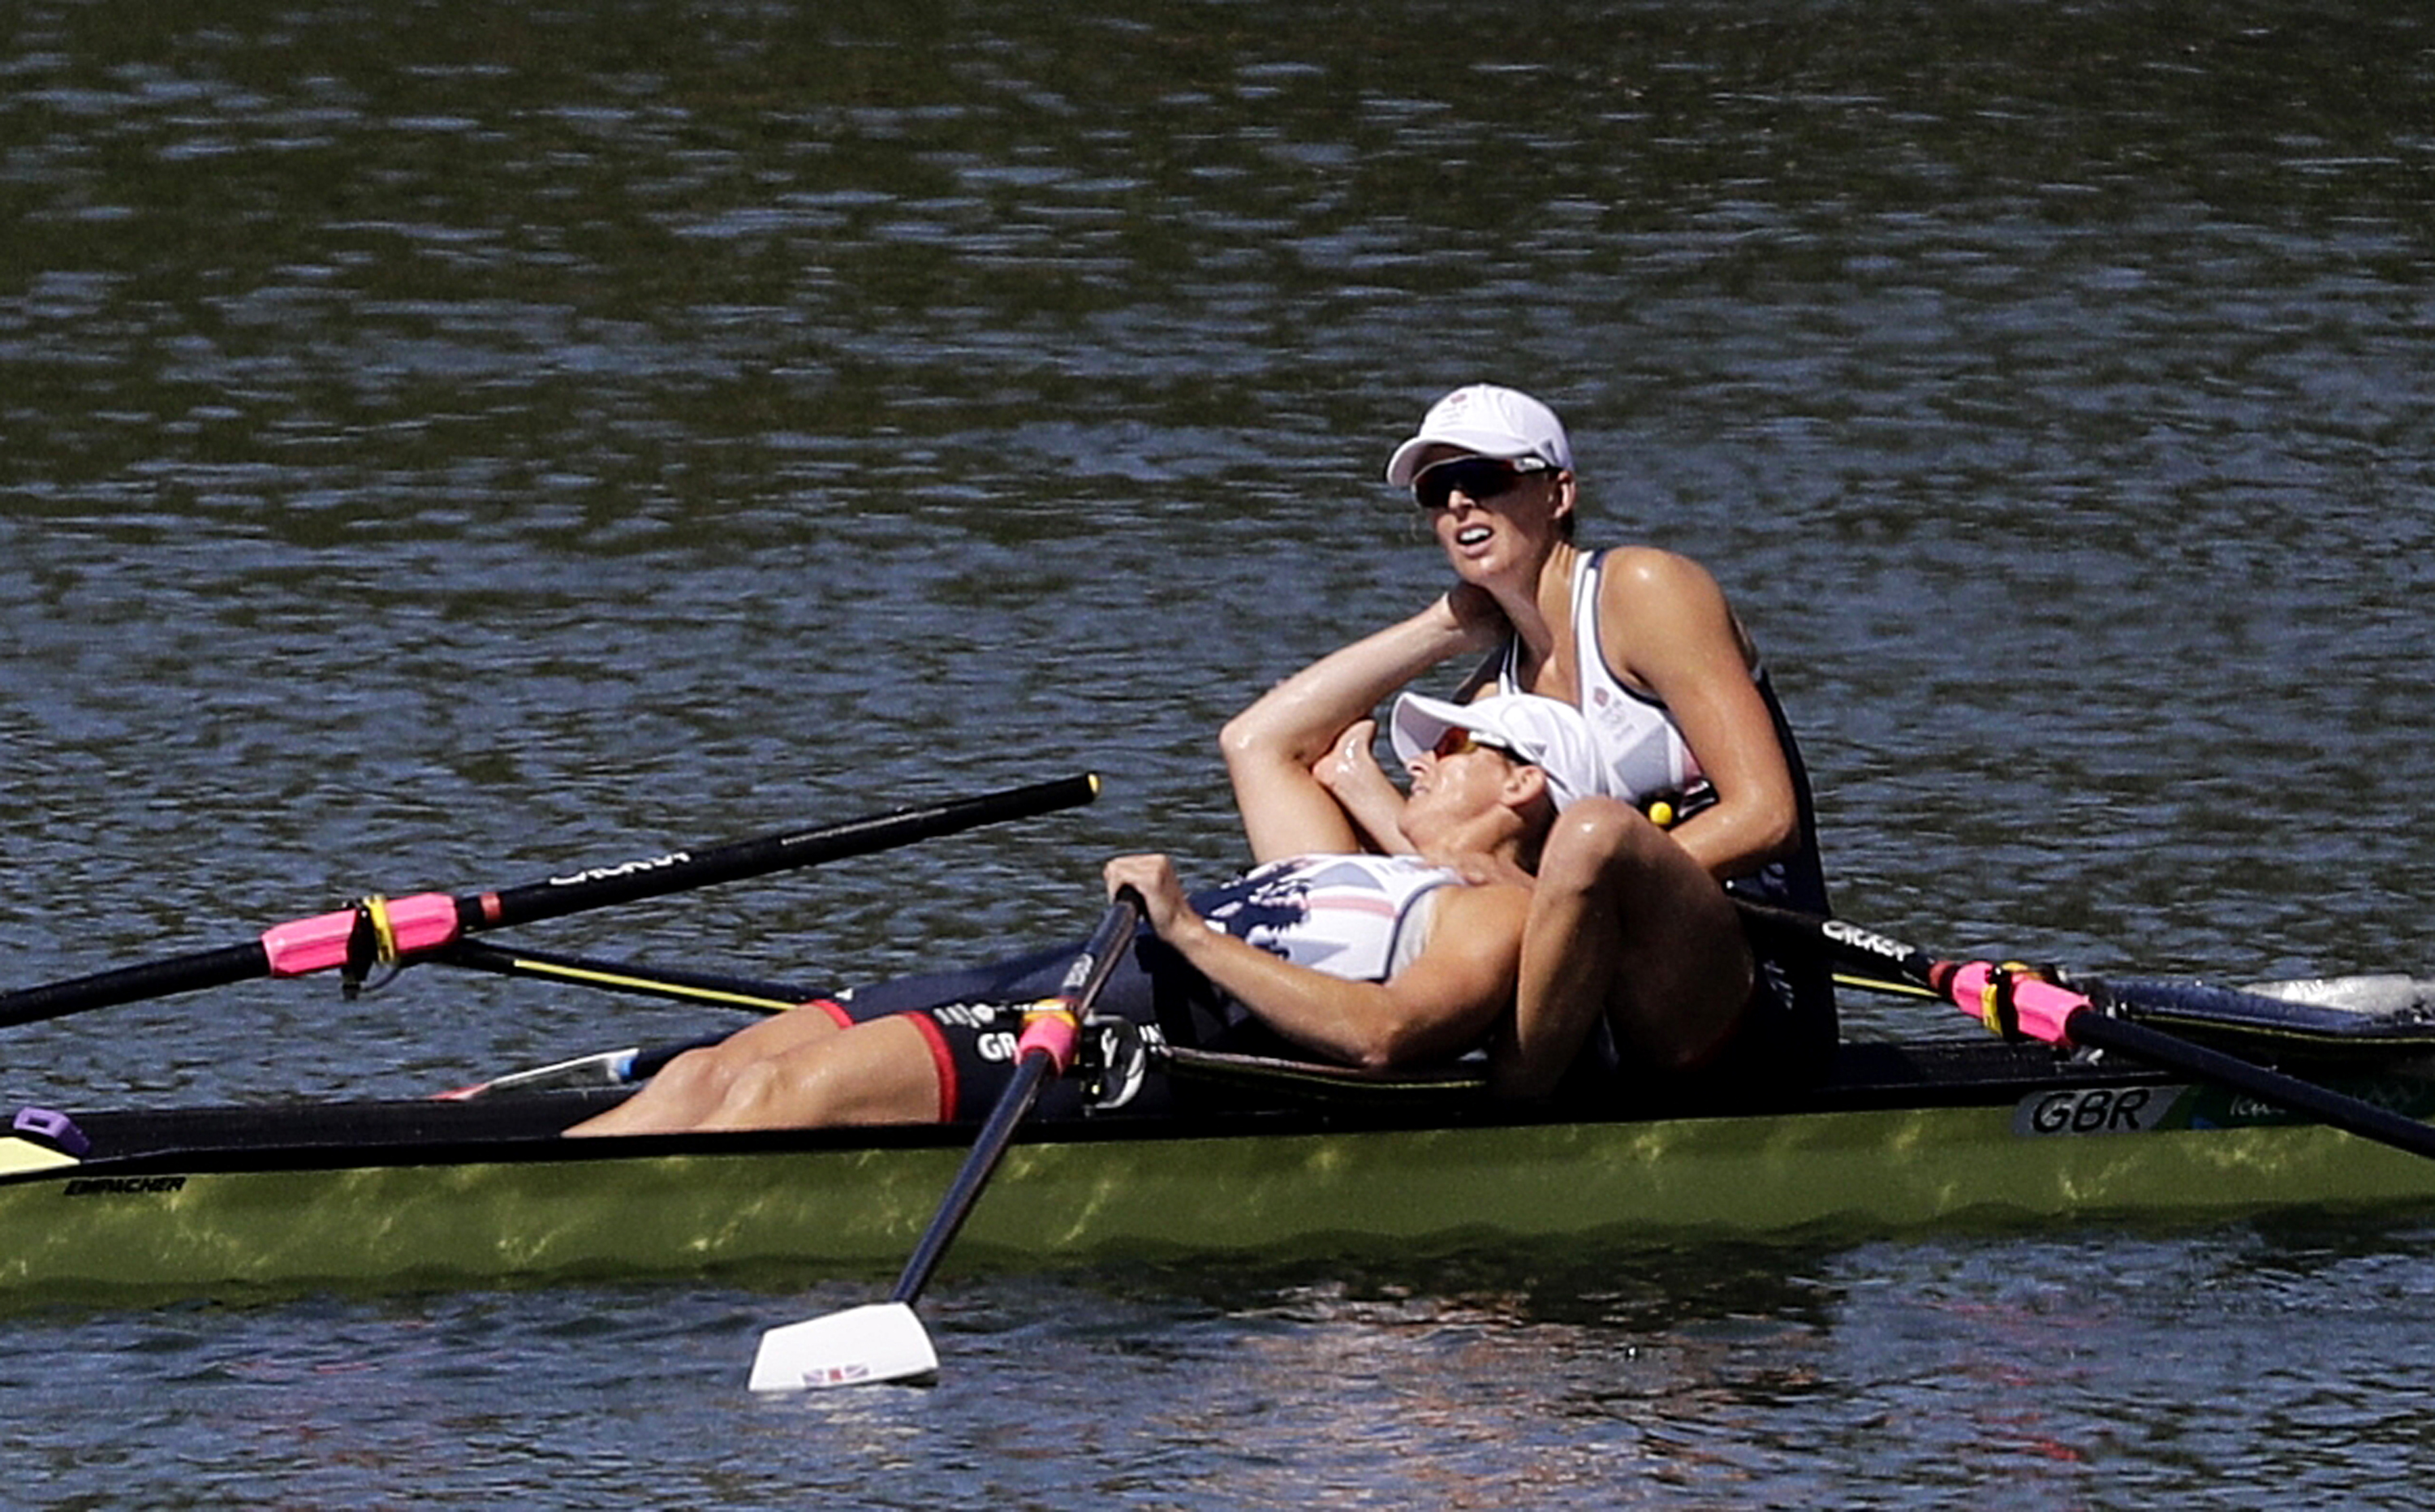 Victoria Thornley and Katherine Grainger, of Britain, react to winning silver in the women's rowing double sculls final during the 2016 Summer Olympics in Rio de Janeiro, Brazil, Thursday, Aug. 11, 2016. (AP Photo/Matt York)